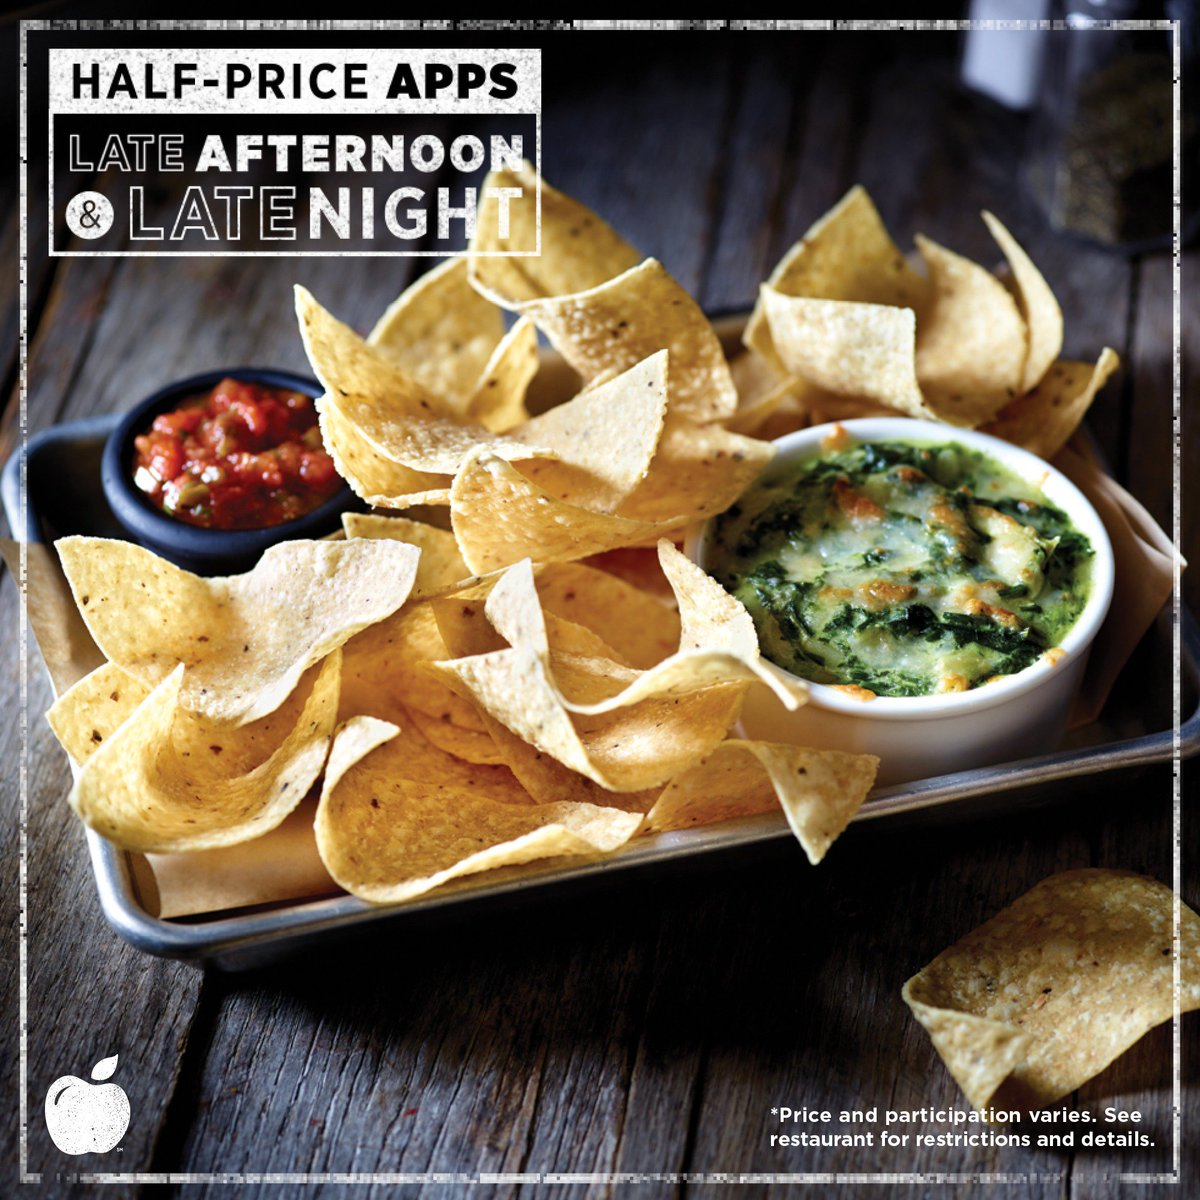 Applebee S Grill Bar On Twitter Spinach Artichoke Dip Mozzarella Sticks Or Boneless Wings The Answer Is All 3 Halfpriceapps Https T Co Yozkp5z24a